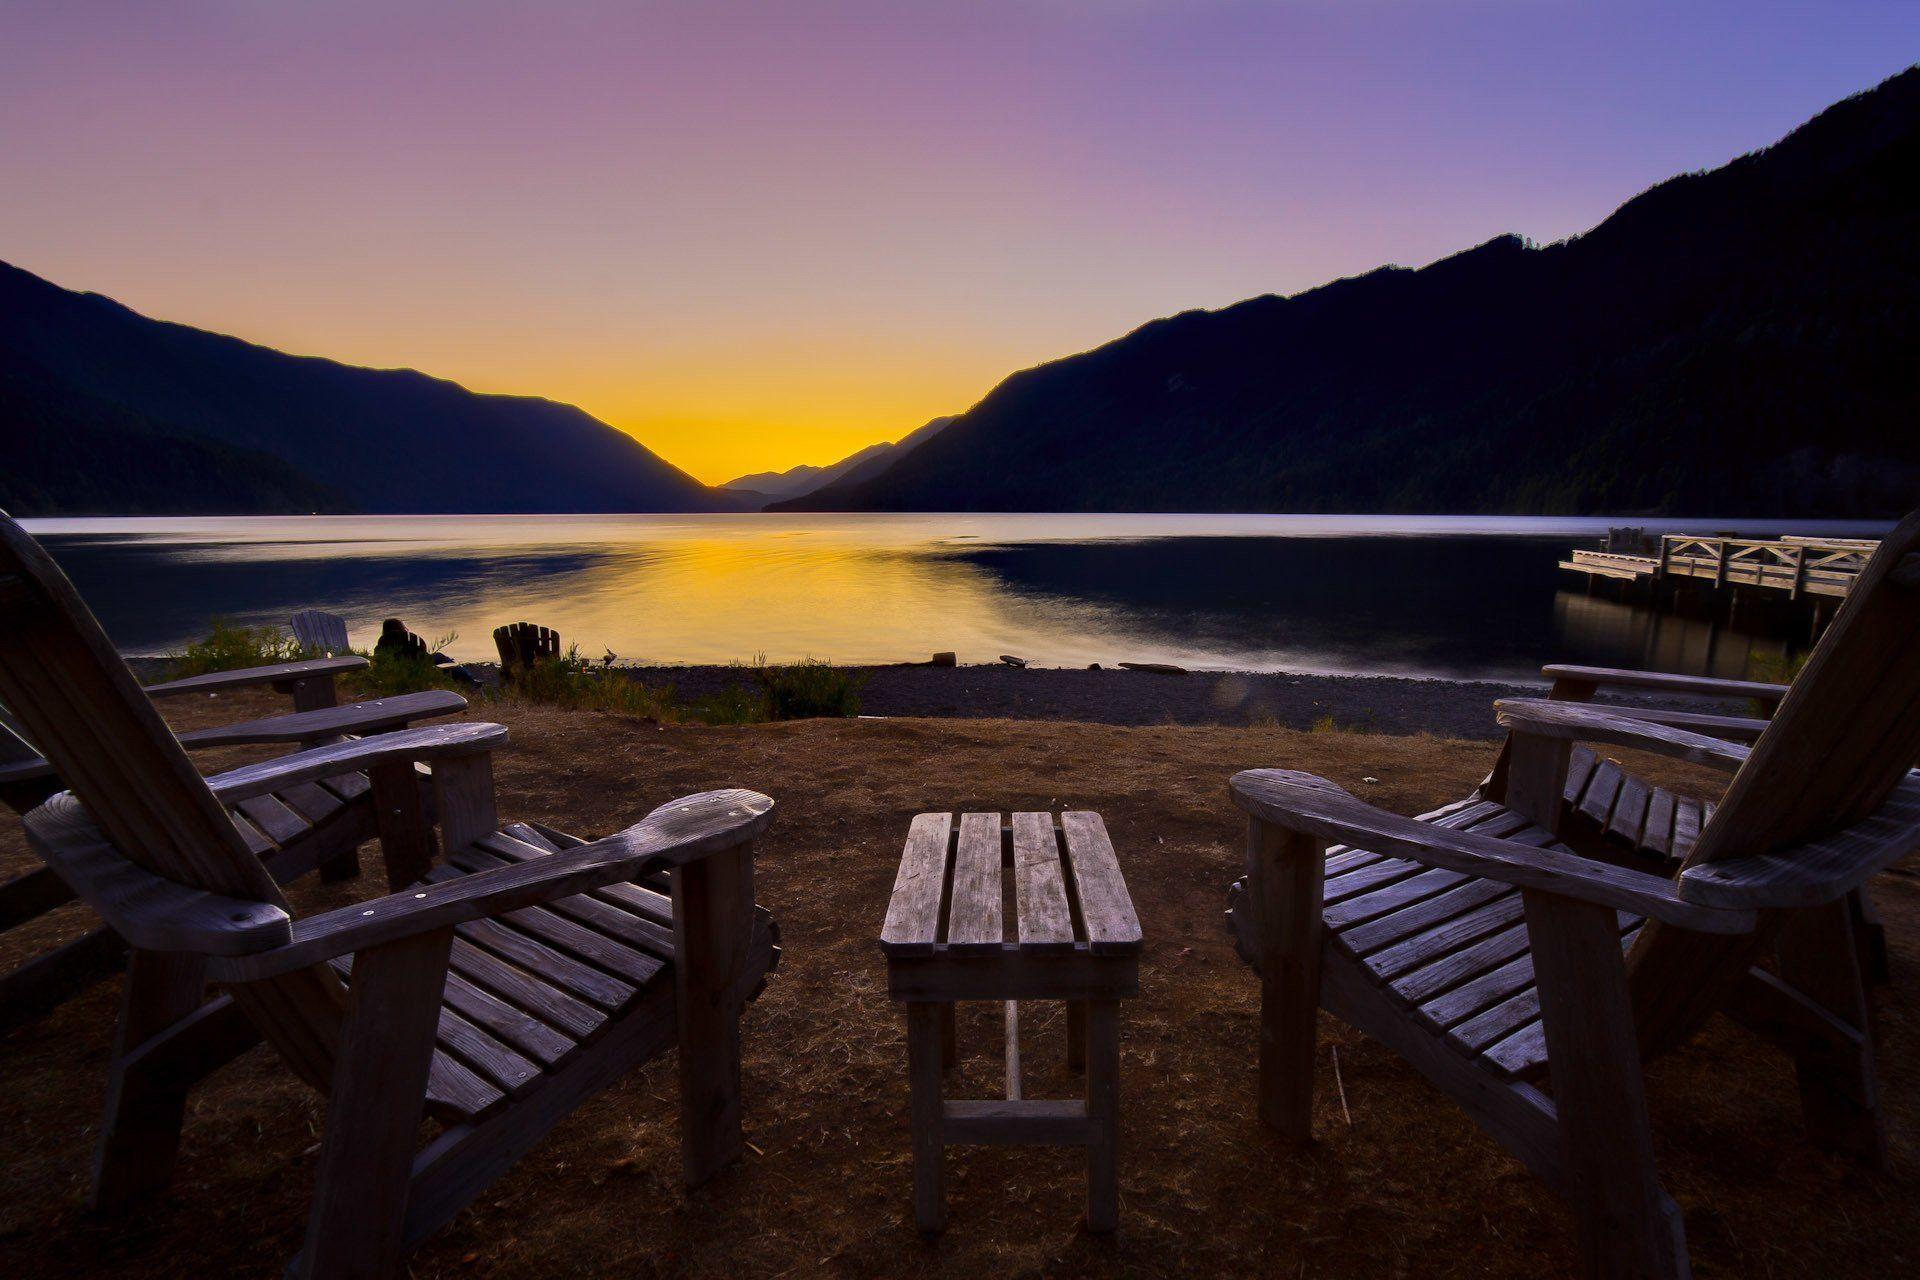 lake crescent lodge olympic national park crescent washington us